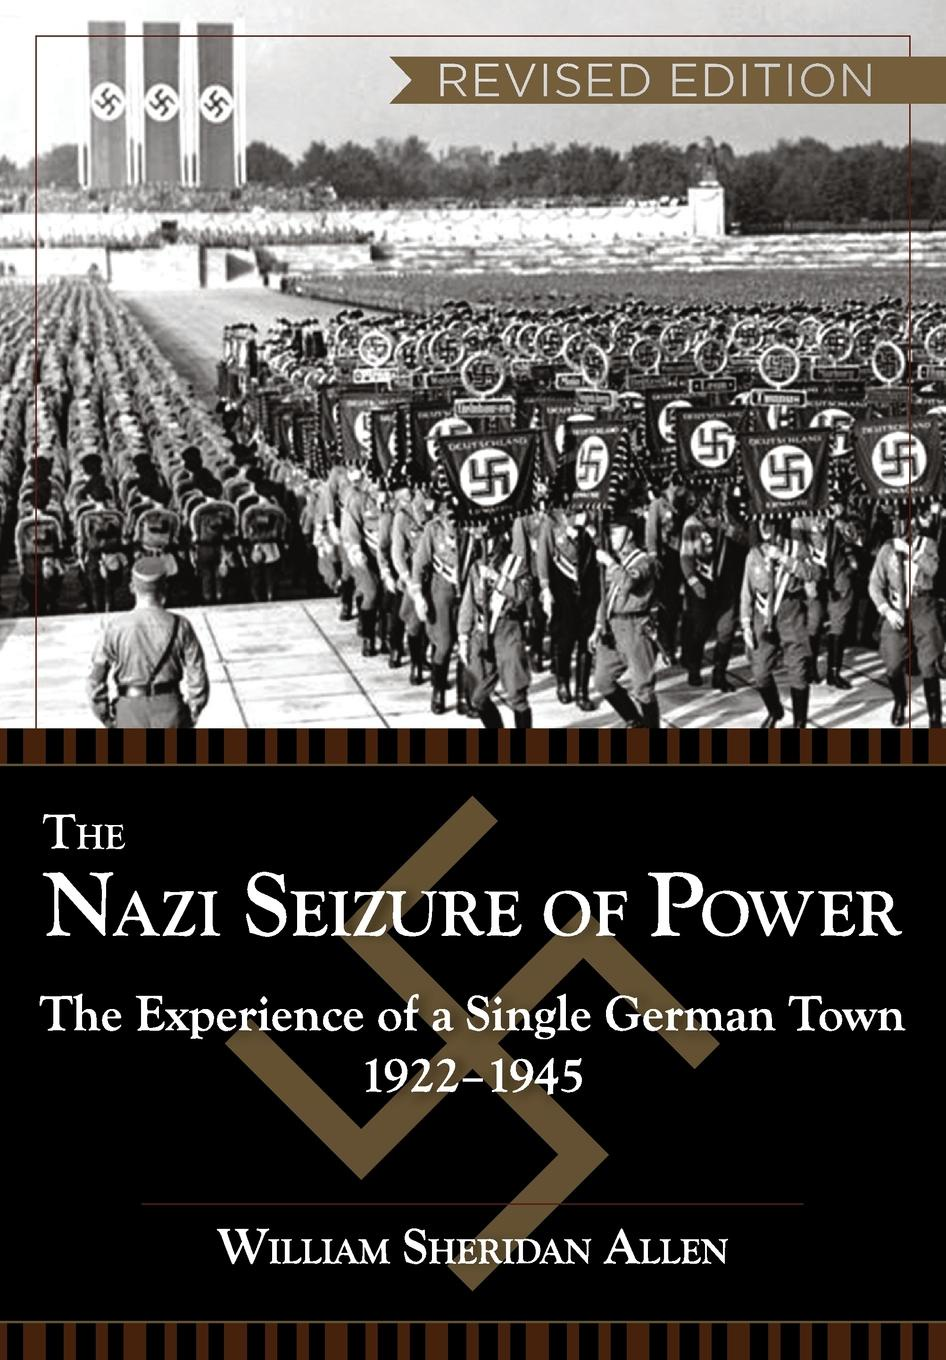 William Sheridan Allen The Nazi Seizure of Power. The Experience of a Single German Town, 1922-1945, Revised Edition the perfect nazi